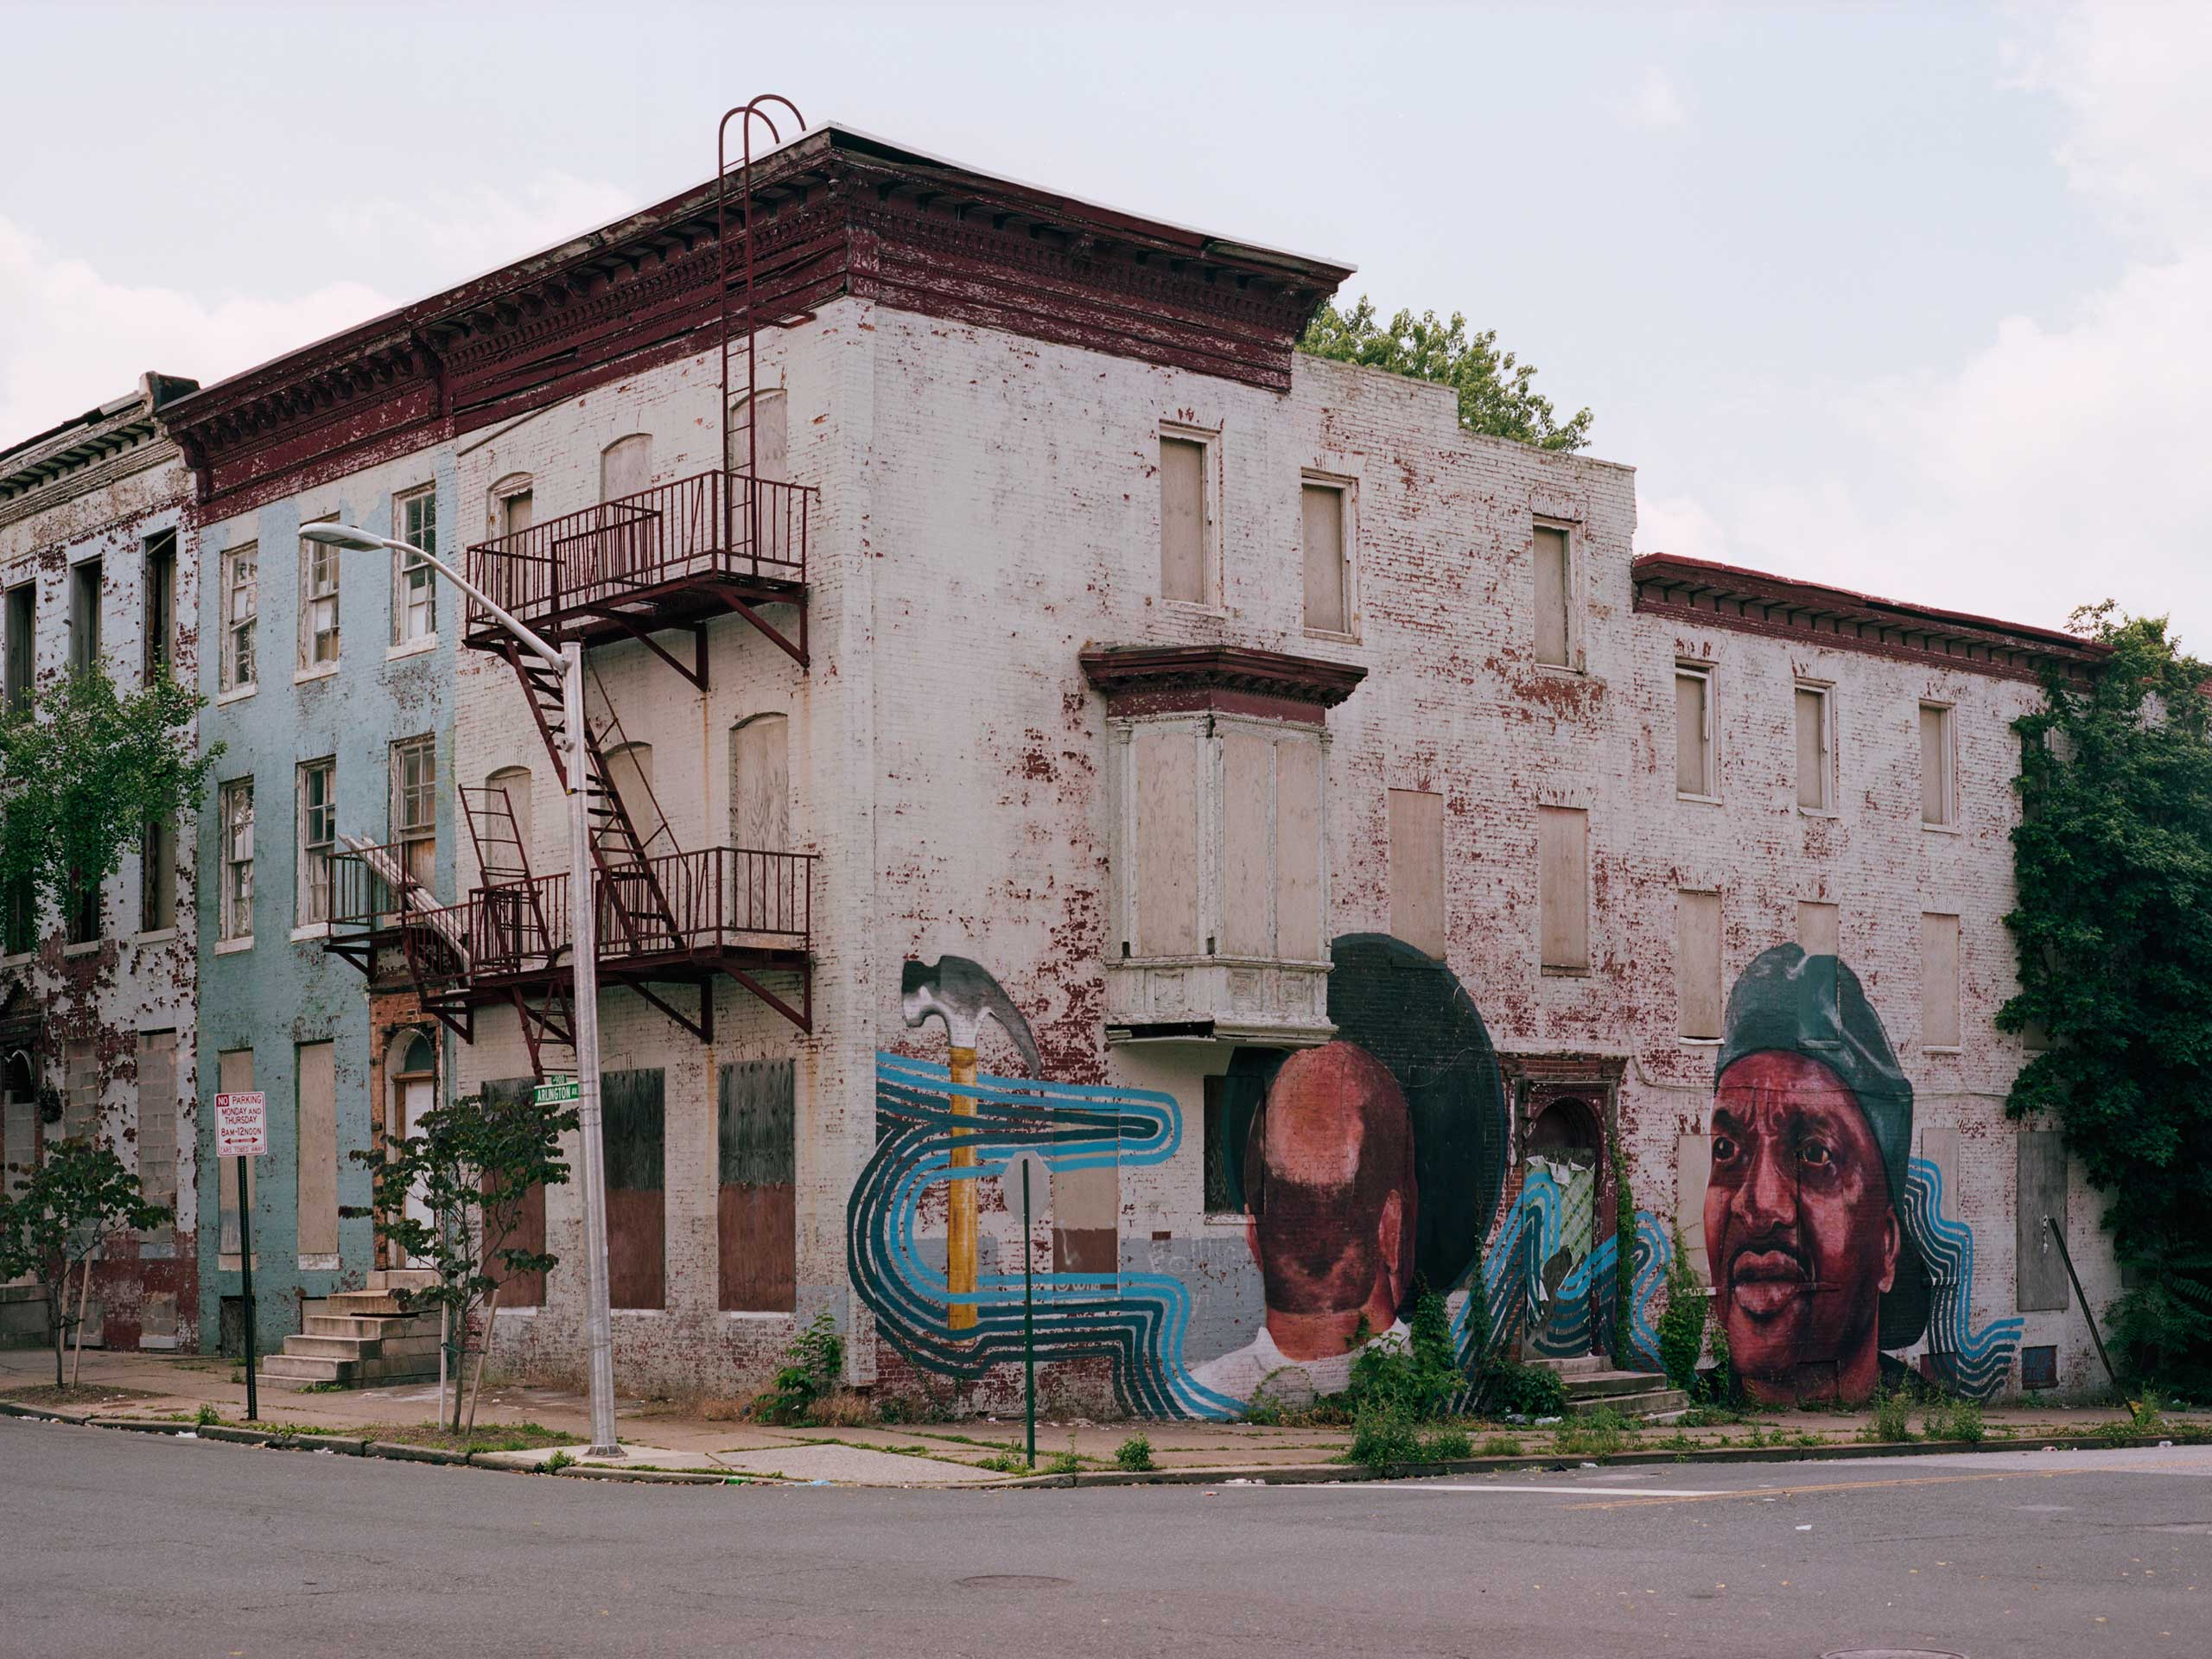 A mural adorns a set of vacant row houses on the corner of Arlington Avenue and Mosher Street in Sandtown. The mural is said to depict a local man who used to fix bikes in the neighborhood. Just a block away at Mosher and North Fremont Avenue is where the Baltimore Police van holding Freddie Gray stopped at an unknown time on April 12, 2015.